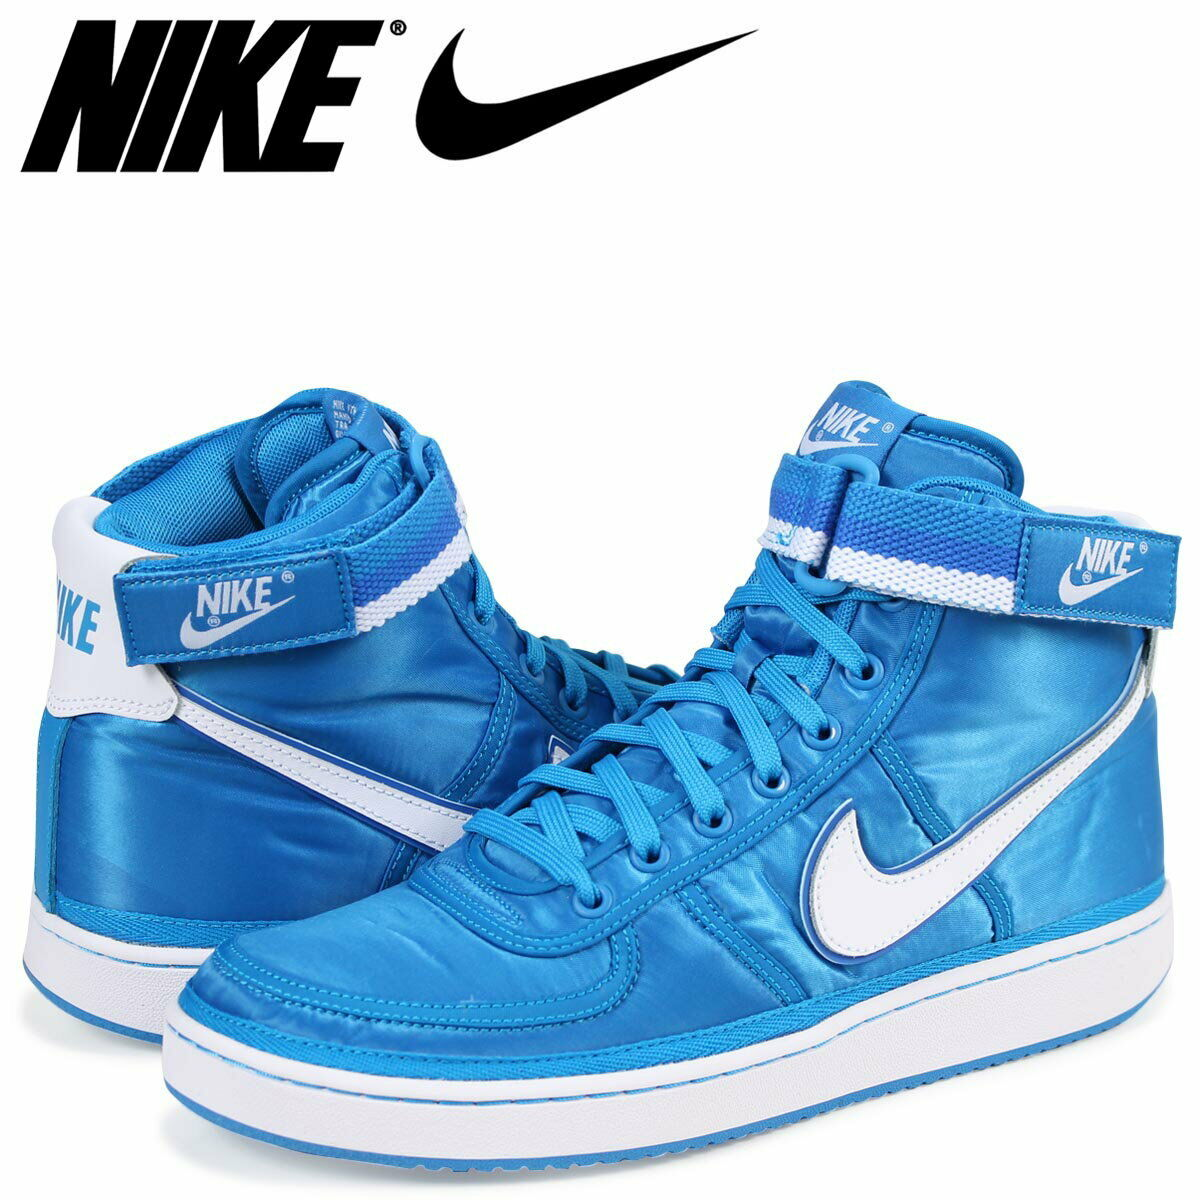 Nike Vandal High Supreme Men's Lifestyle Sneakers Trainers Boots shoes